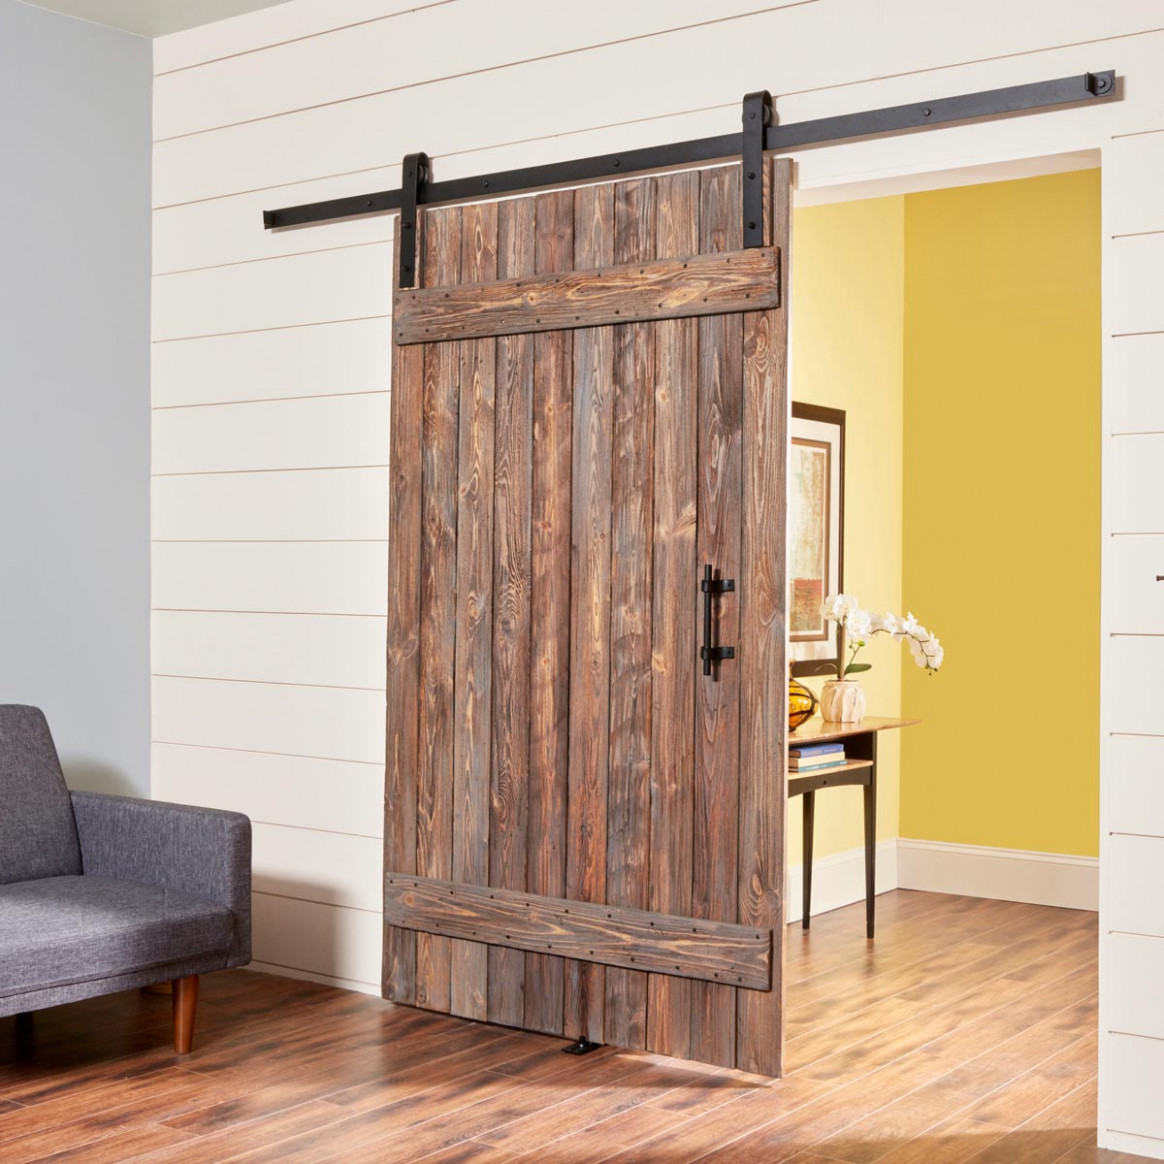 How To Build A Simple Rustic Barn Door — The Family Handyman Rustic Wooden Carports